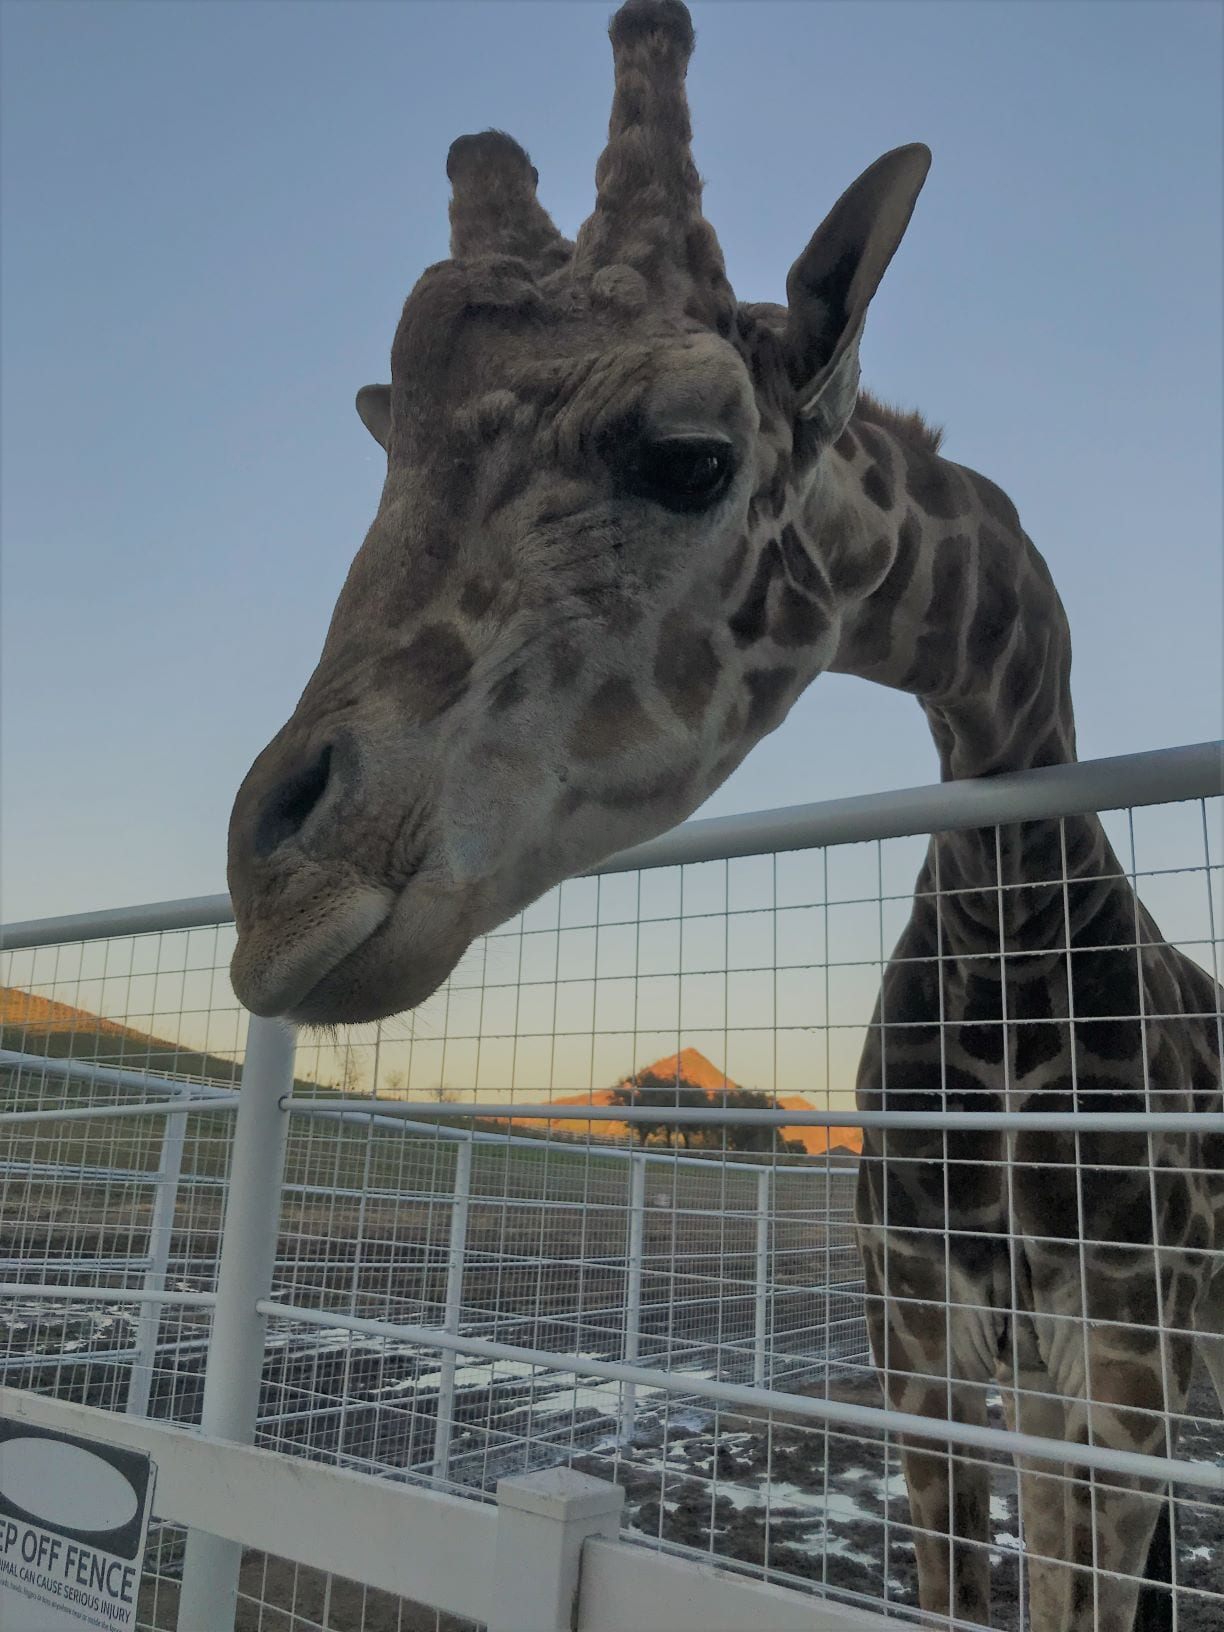 Stanley the Giraffe, a retired movie animal actor and resident celebrity at Malibu Wines Safari